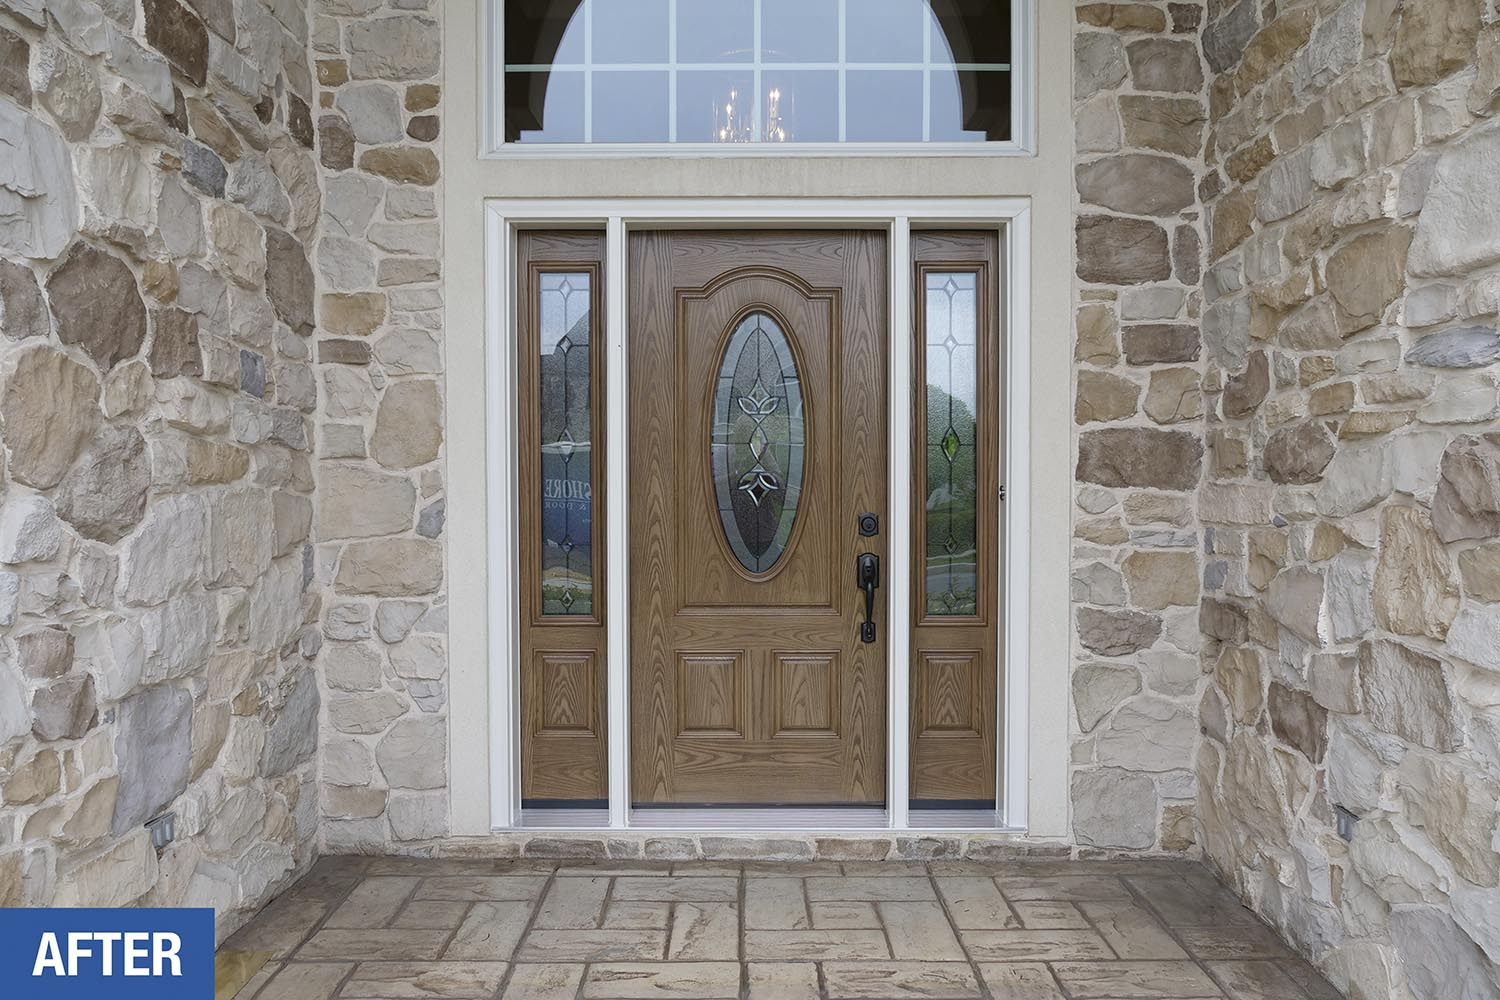 Their Old Door Had Some Significant Chipping And Needed Painted Every Year  Just To Stay Looking Presentable! This New Entry Door System Looks Great  And Will ...